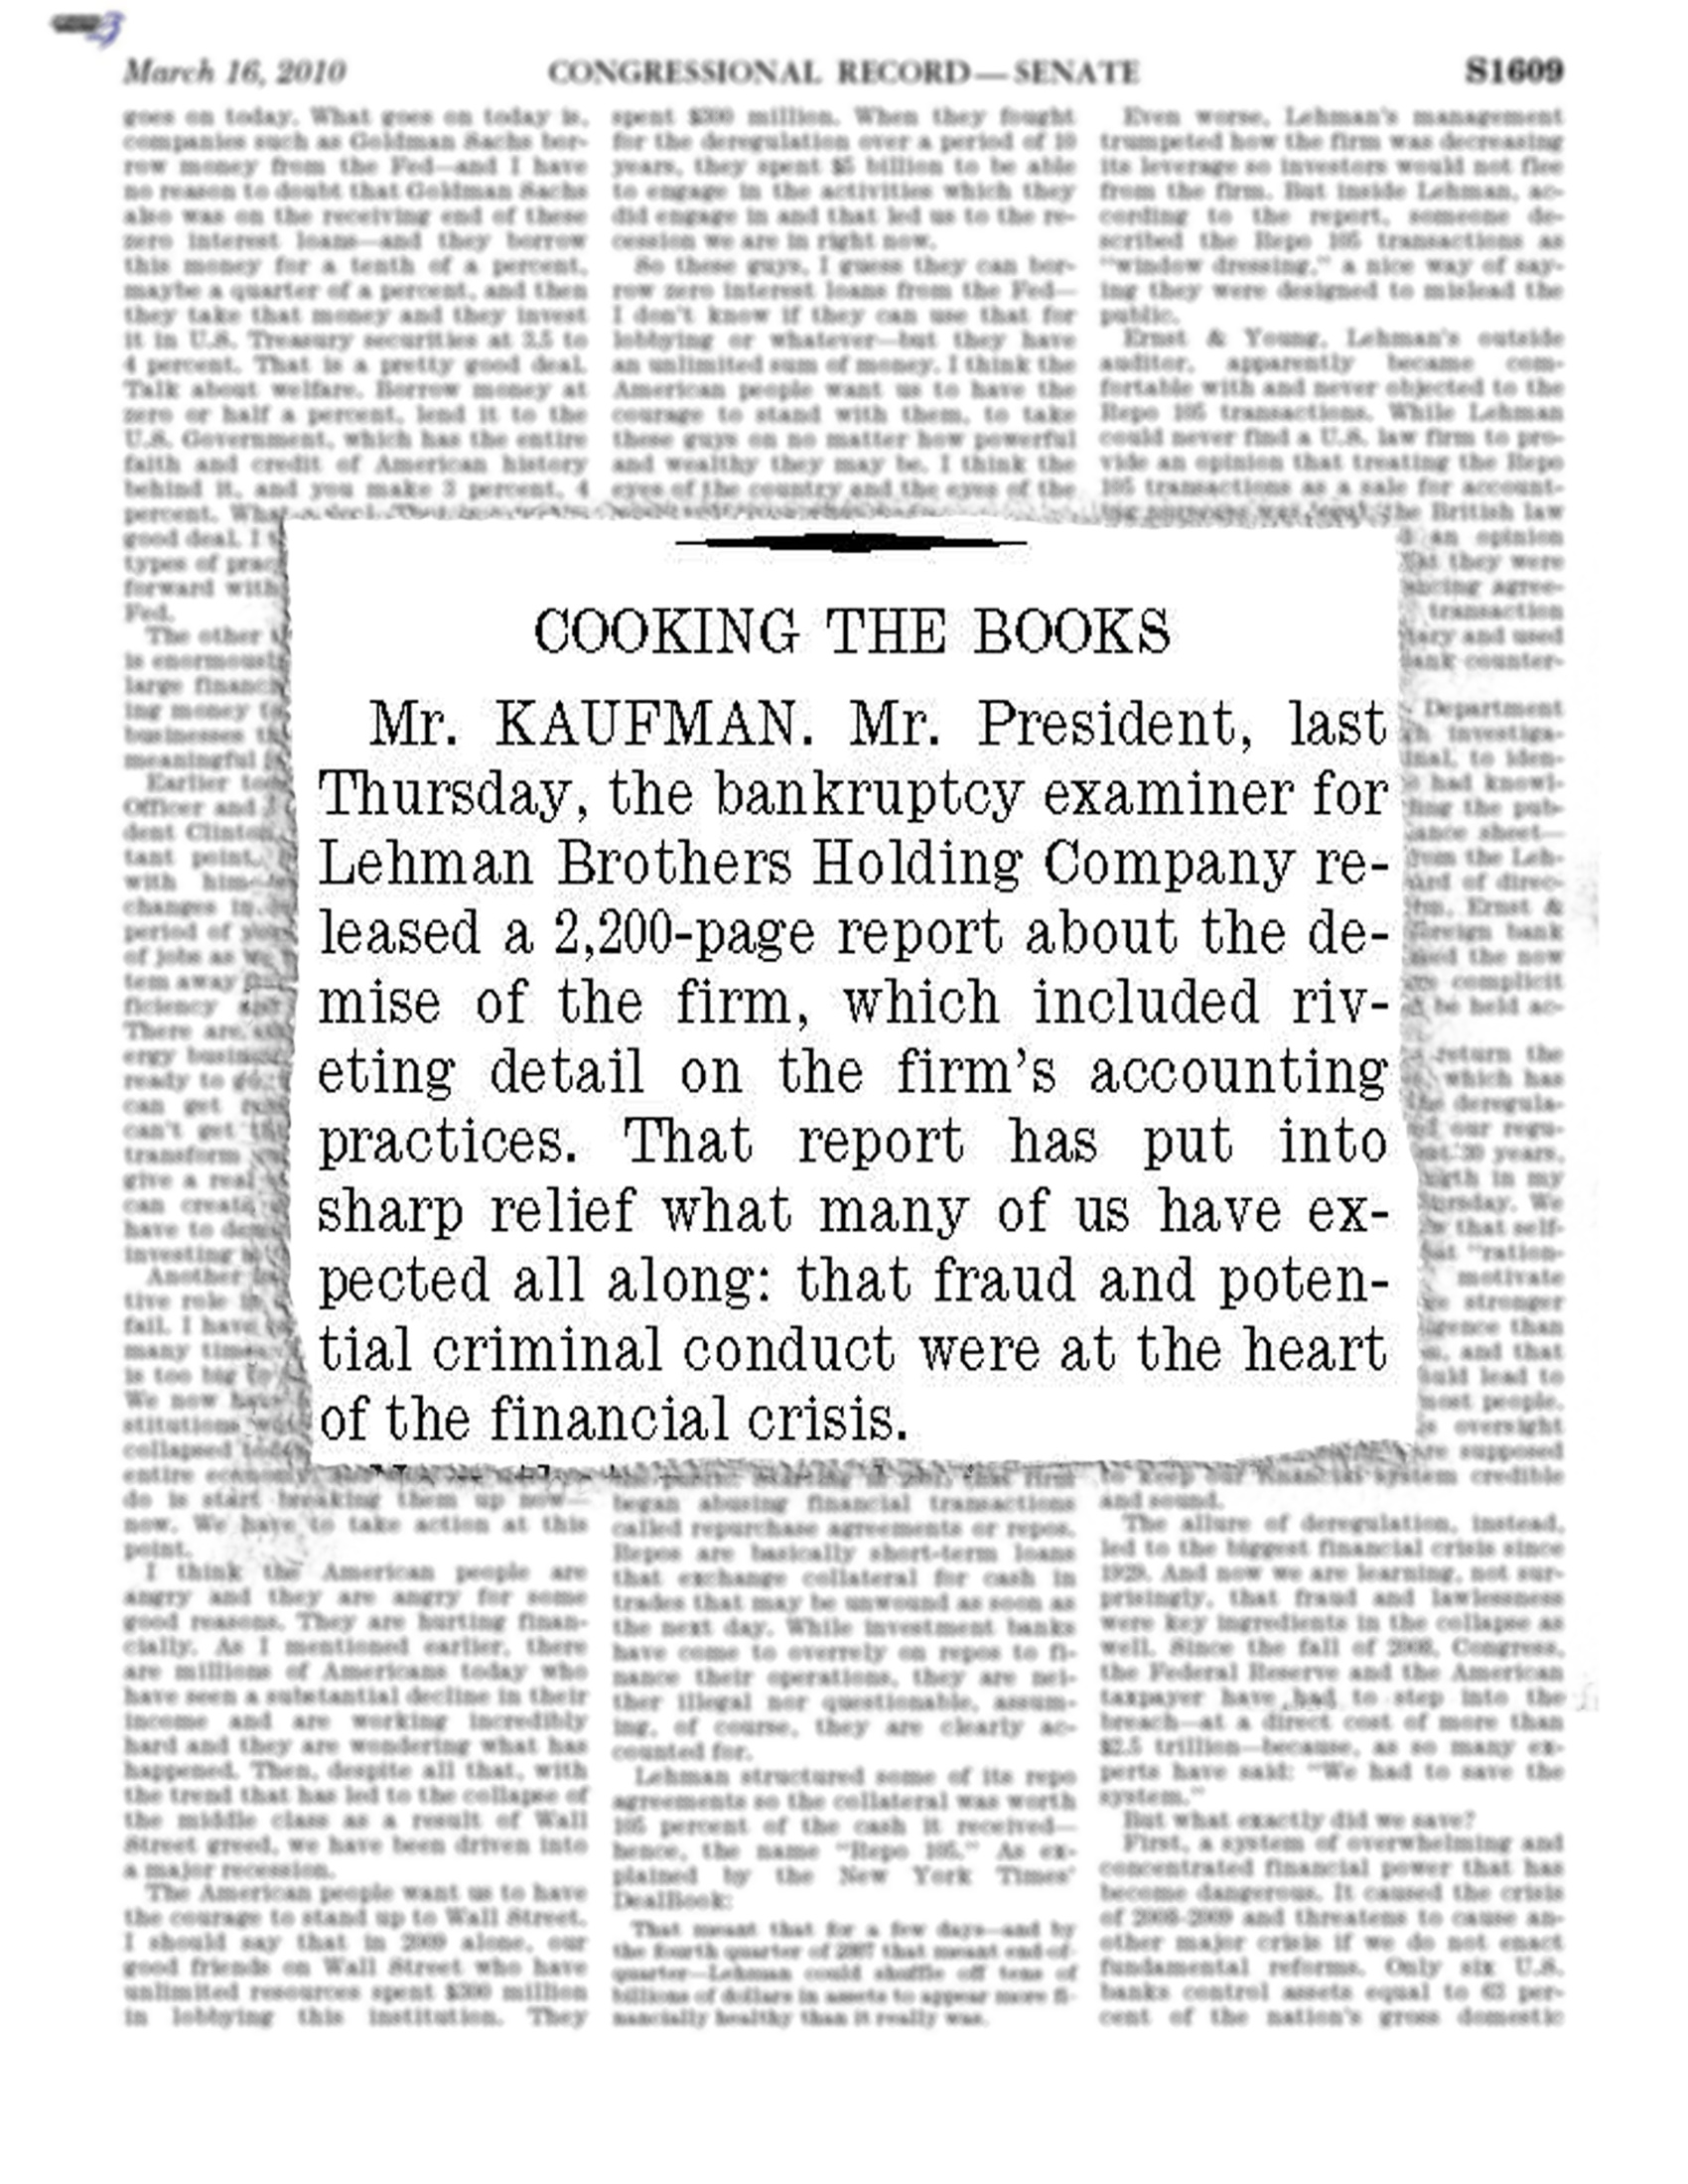 'Cooking the Books,' Congressional Record, 2010 March 16